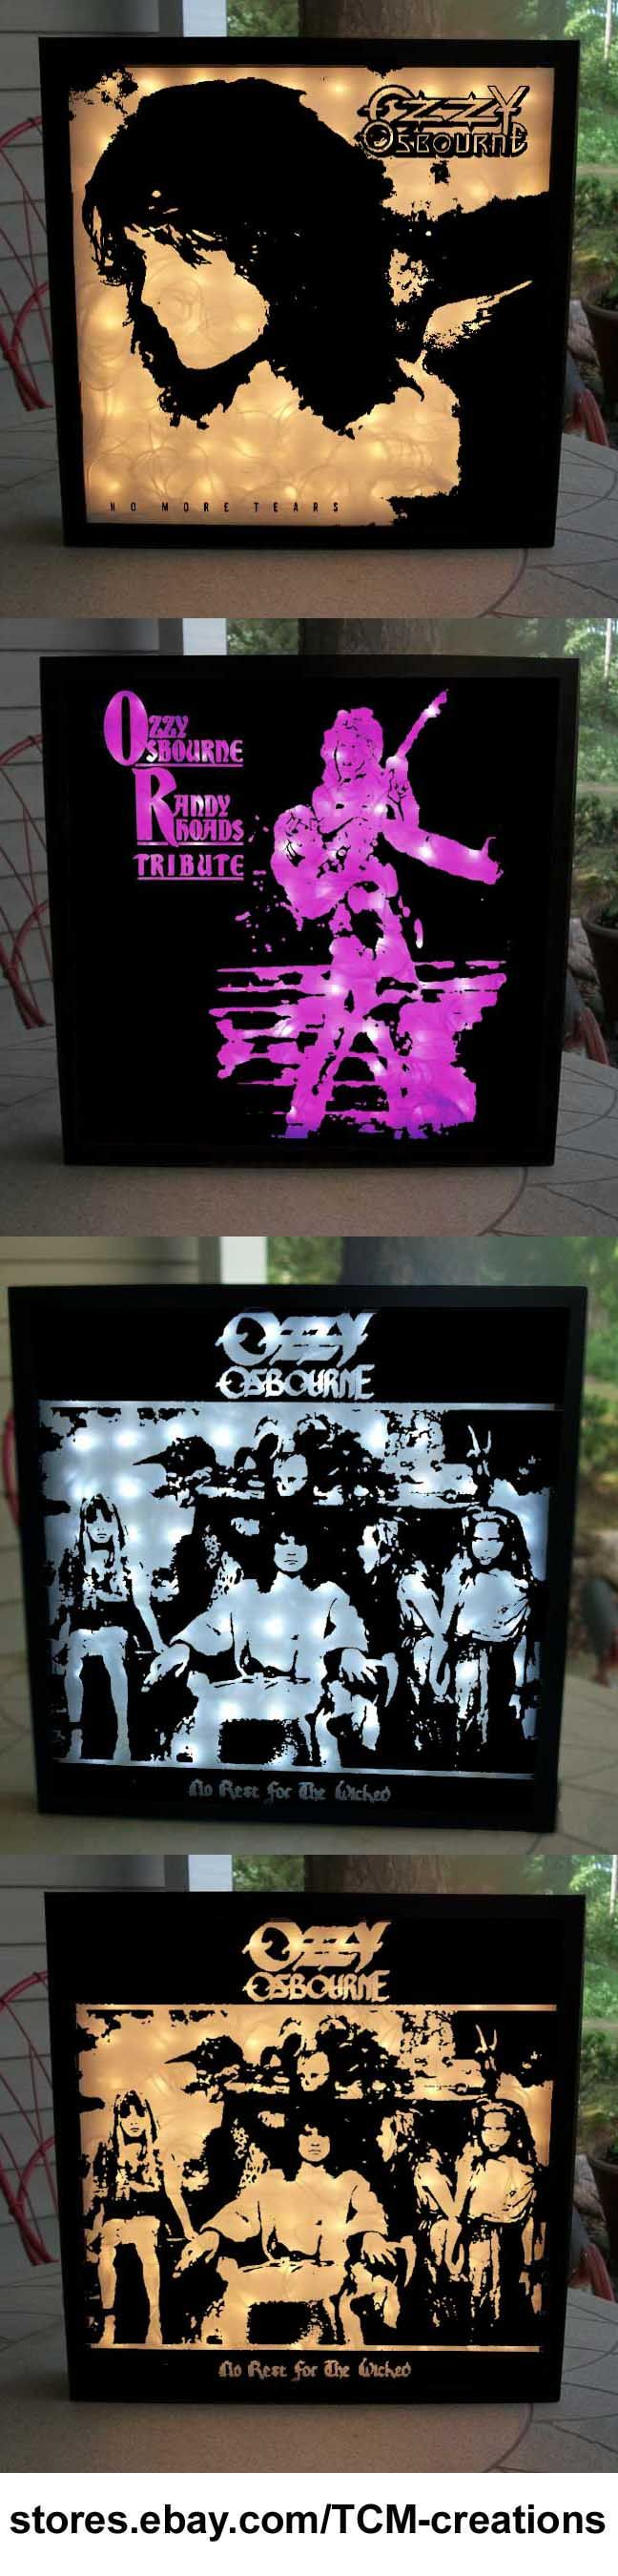 Ozzy Osbourne Shadow Boxes with LED lighting. Blizzard Of Ozz, Diary Of A Madman, Speak Of The Devil, Bark At The Moon, The Ultimate Sin, No Rest For The Wicked, No More Tears, Ozzmosis, Black Sabbath, Randy Rhoads, Jake E Lee, Zakk Wylde